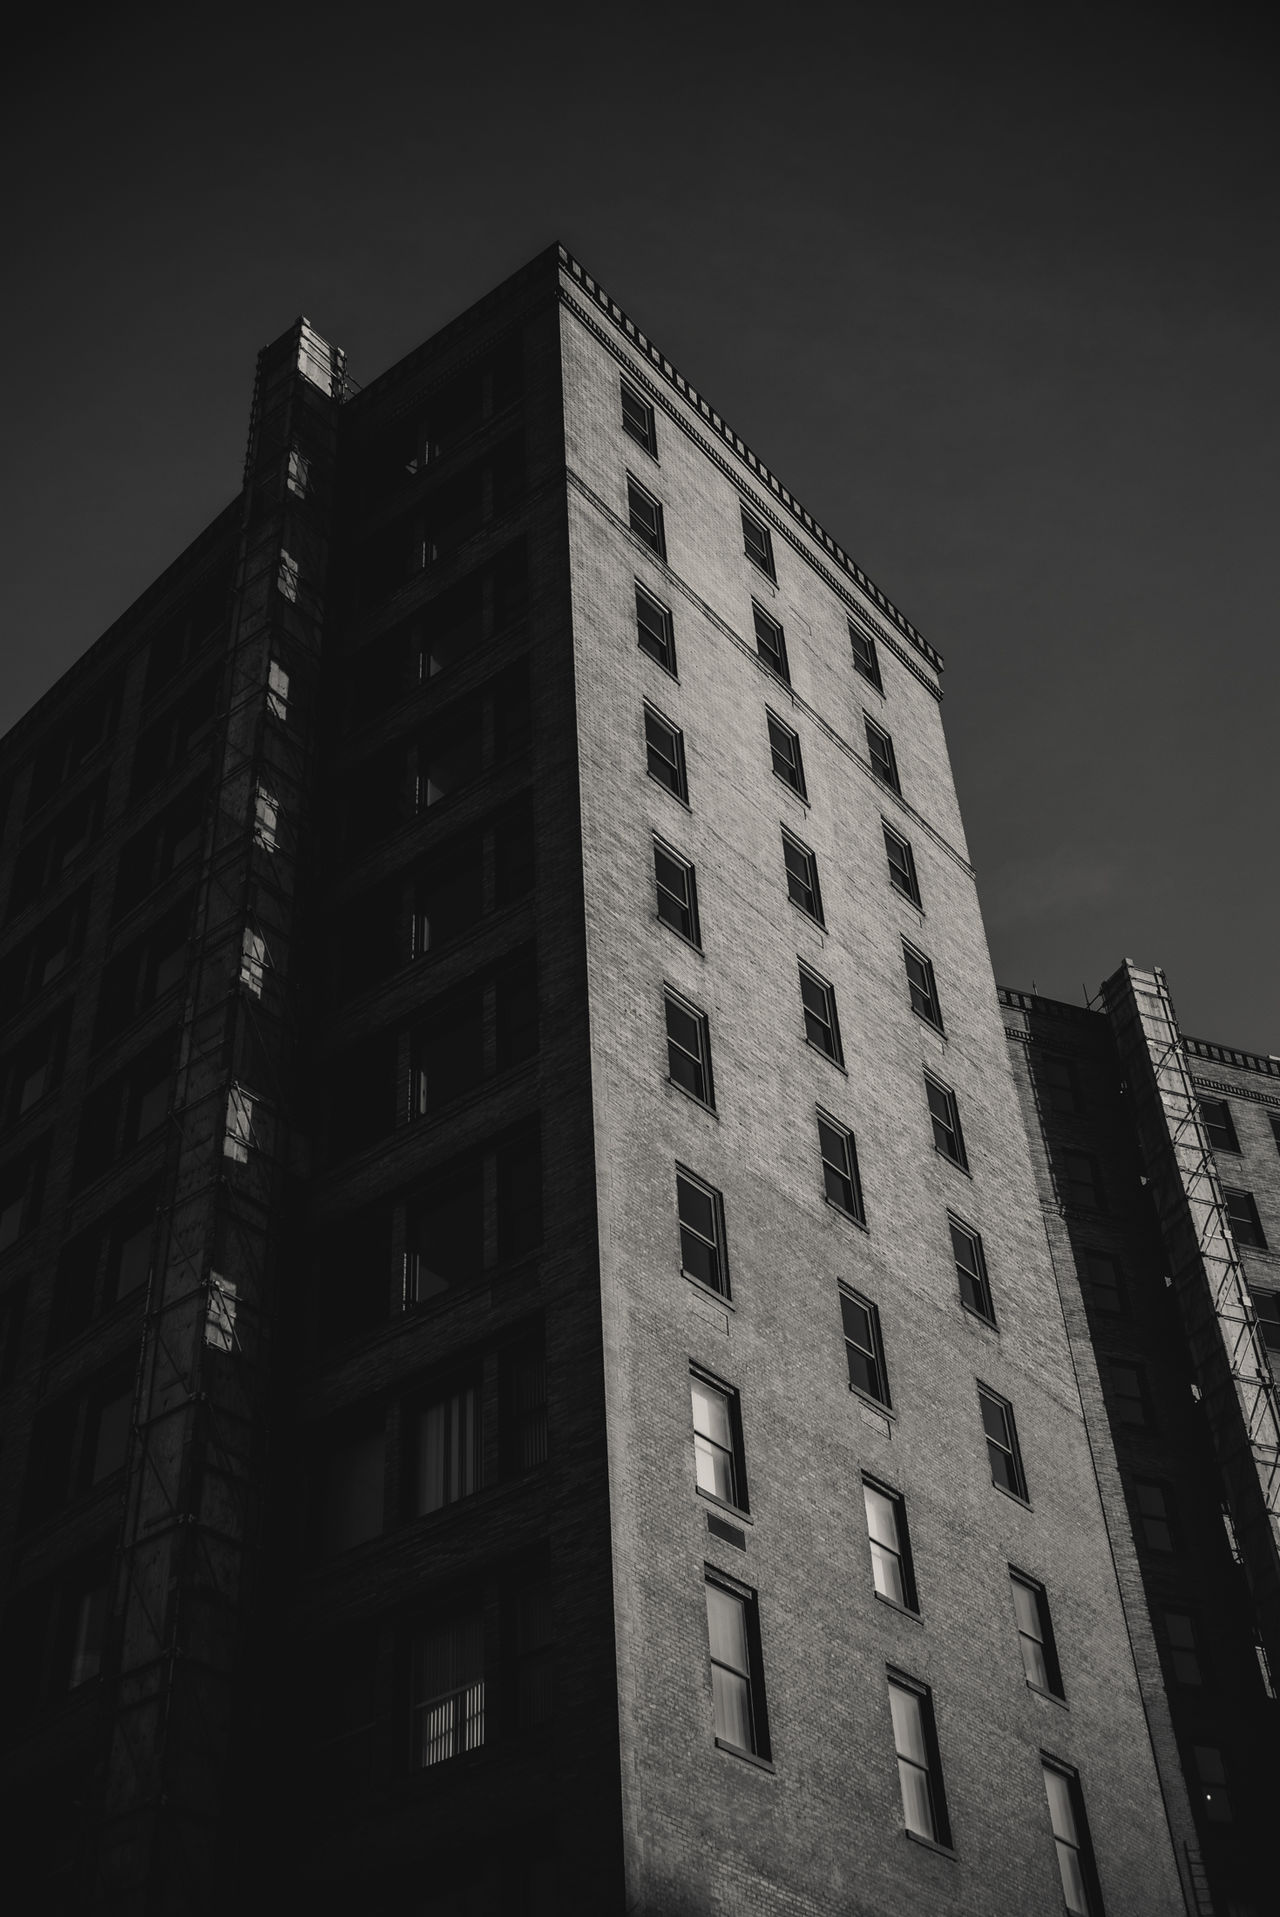 Architectural Architecture Black And White Building Exterior Buildings City Light And Shadow Low Angle View Monochrome Rochester, NY Sky The Architect - 2017 EyeEm Awards Urban